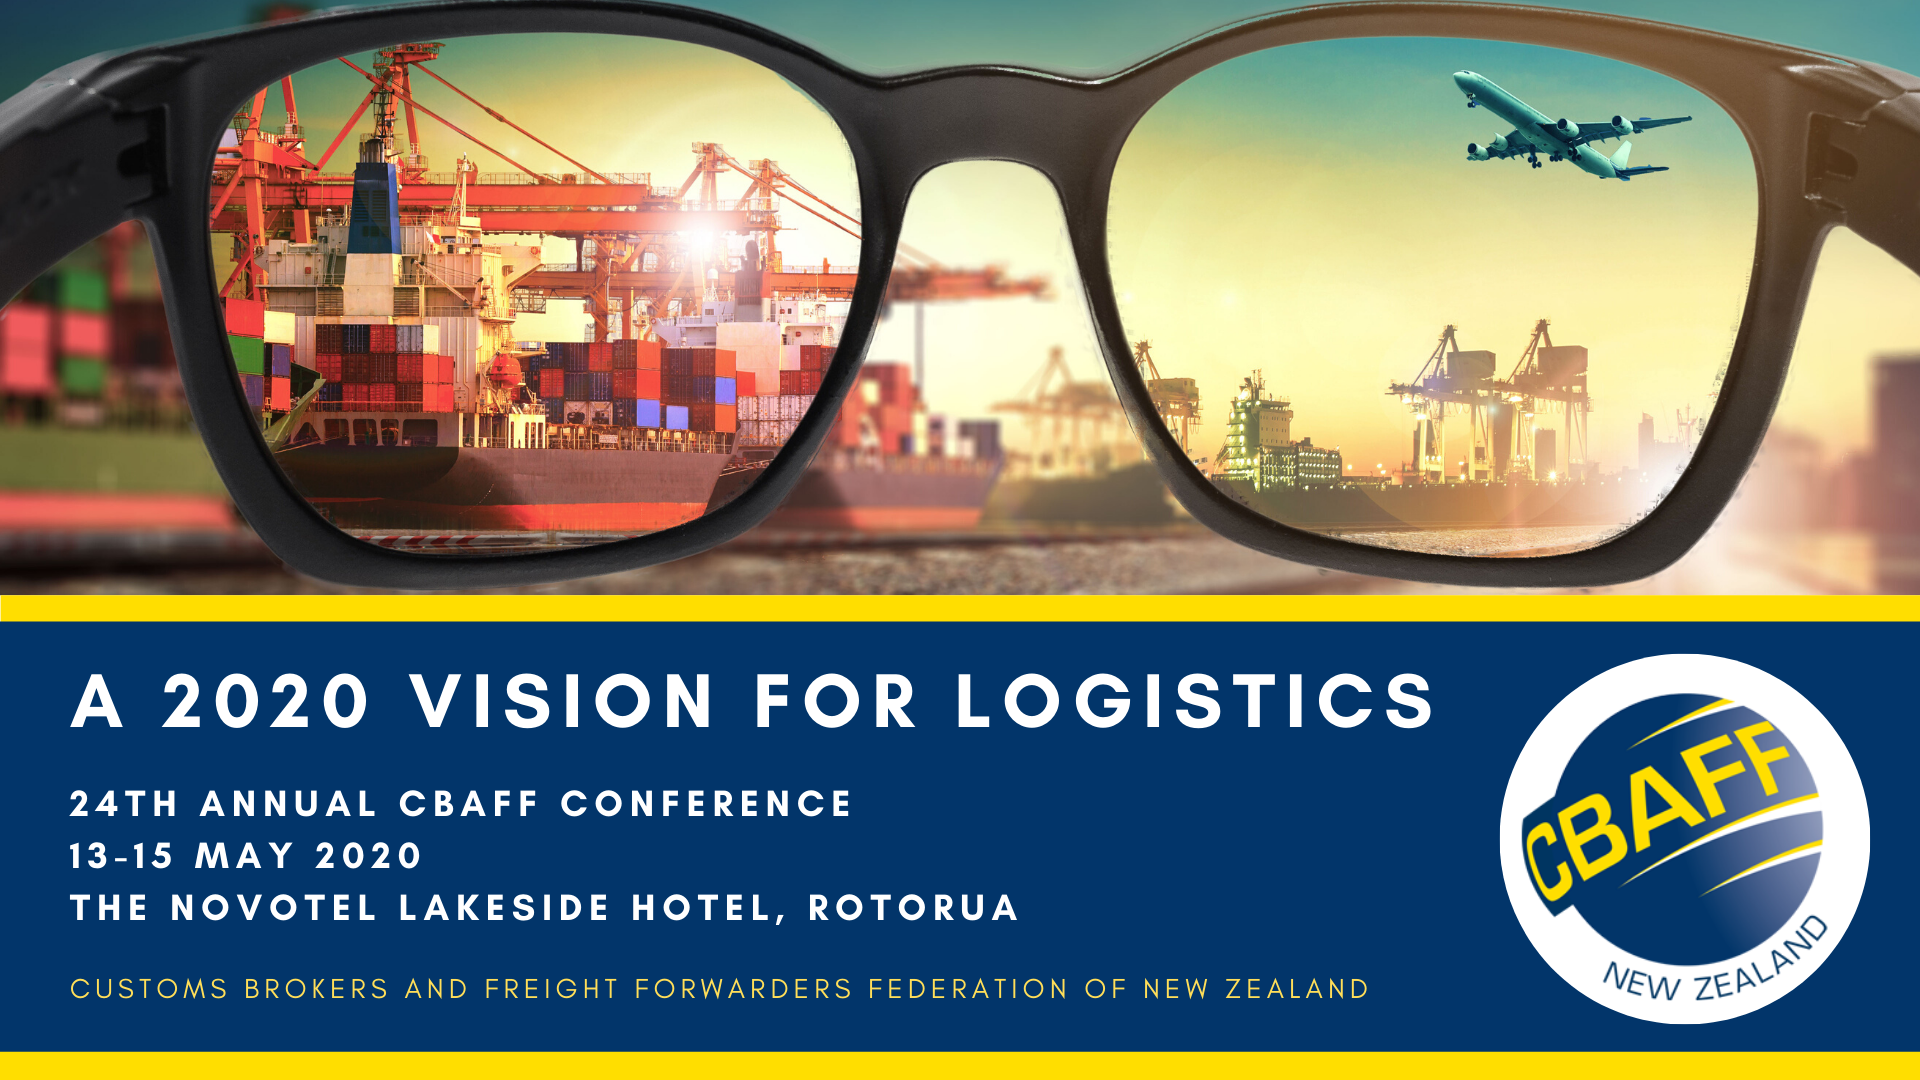 Customs Brokers and Freight Forwarders Federation of New Zealand Inc